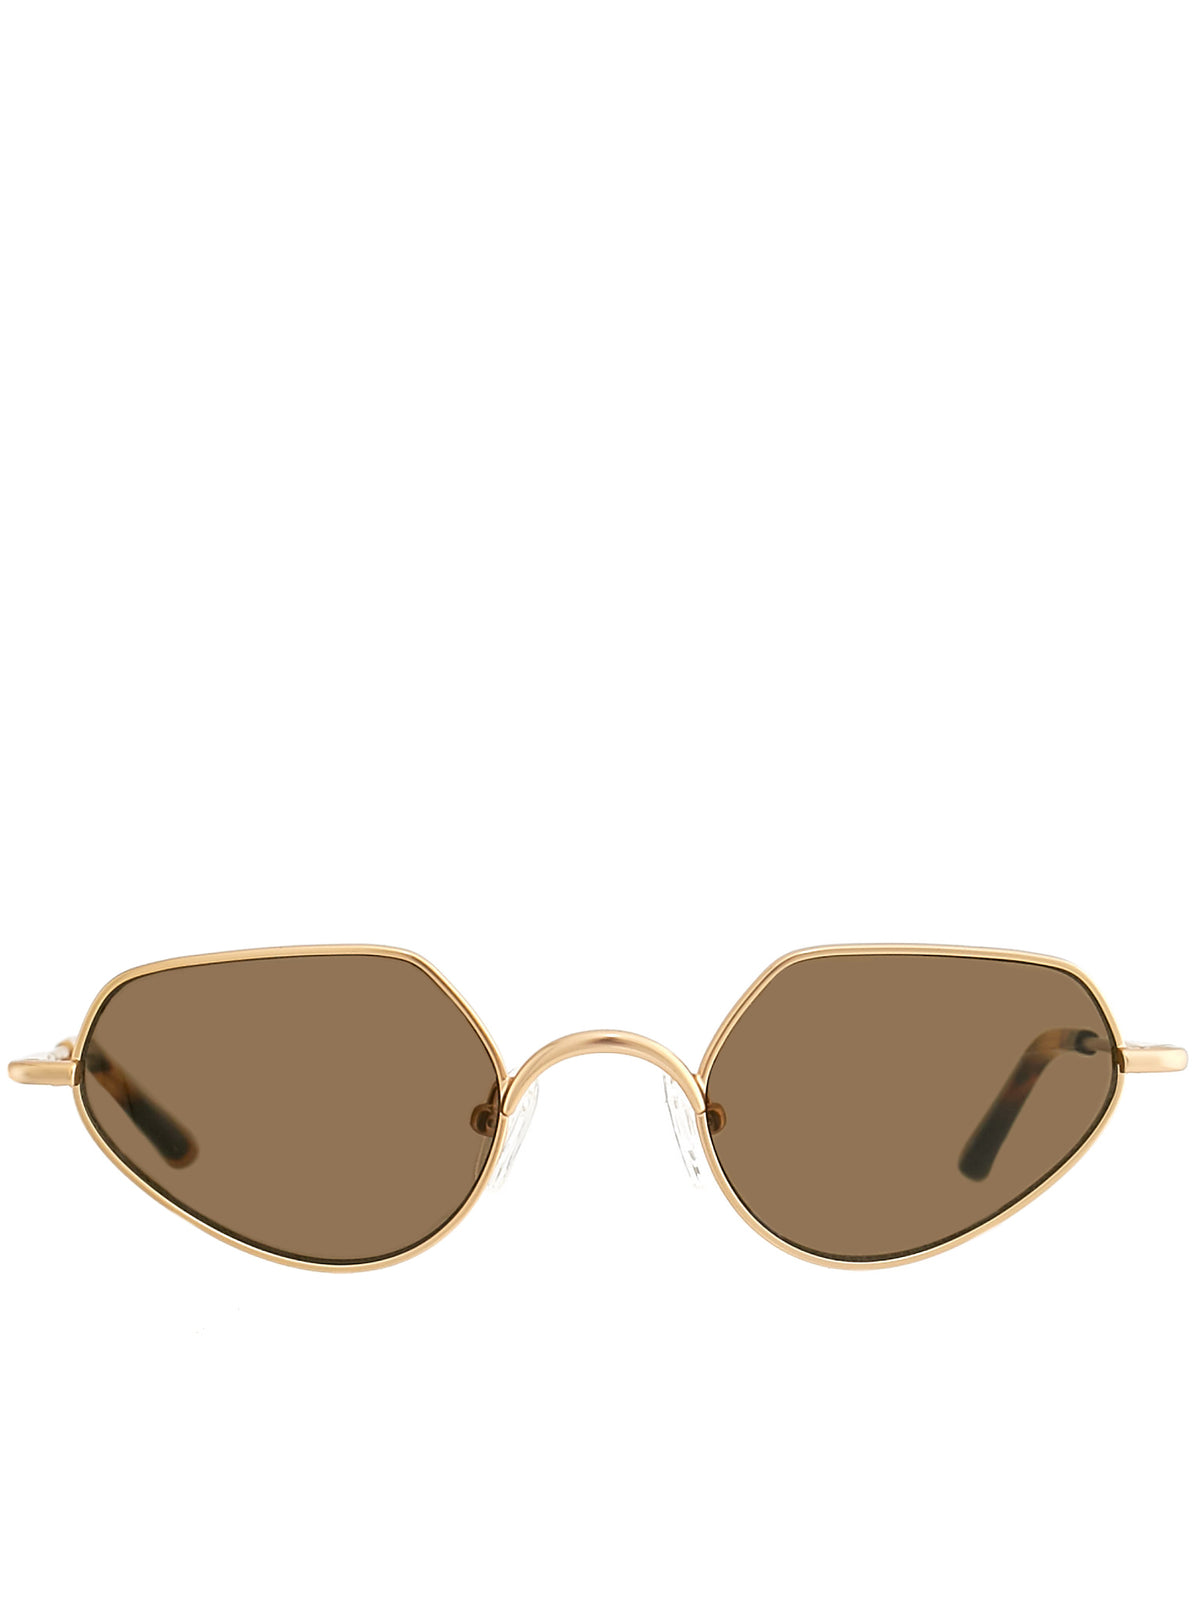 Linda Farrow Dries Van Noten Sunglasses - Hlorenzo Front